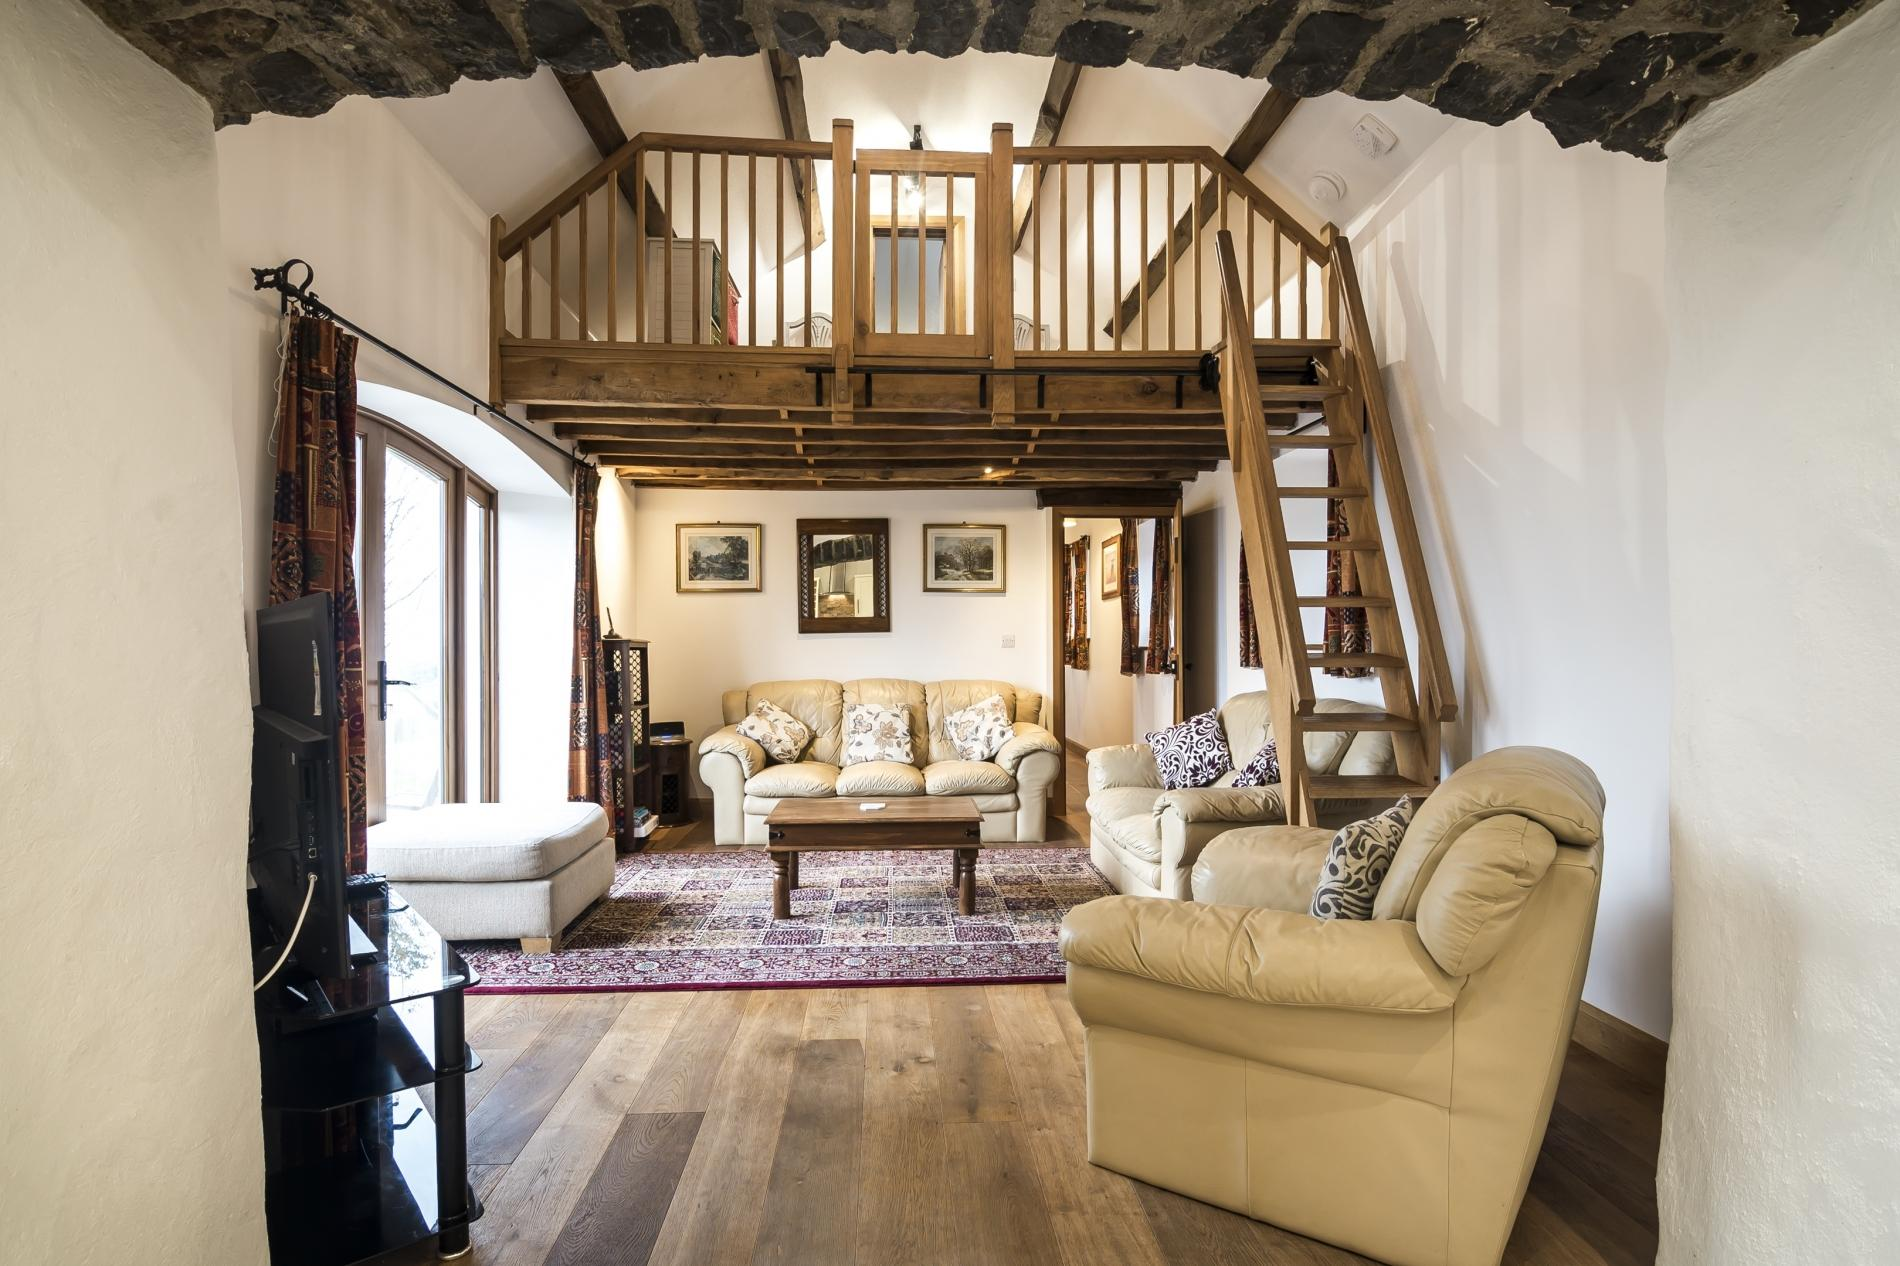 Orchard Cottage - Luxurious Barn Conversion - Beavers Hill 1